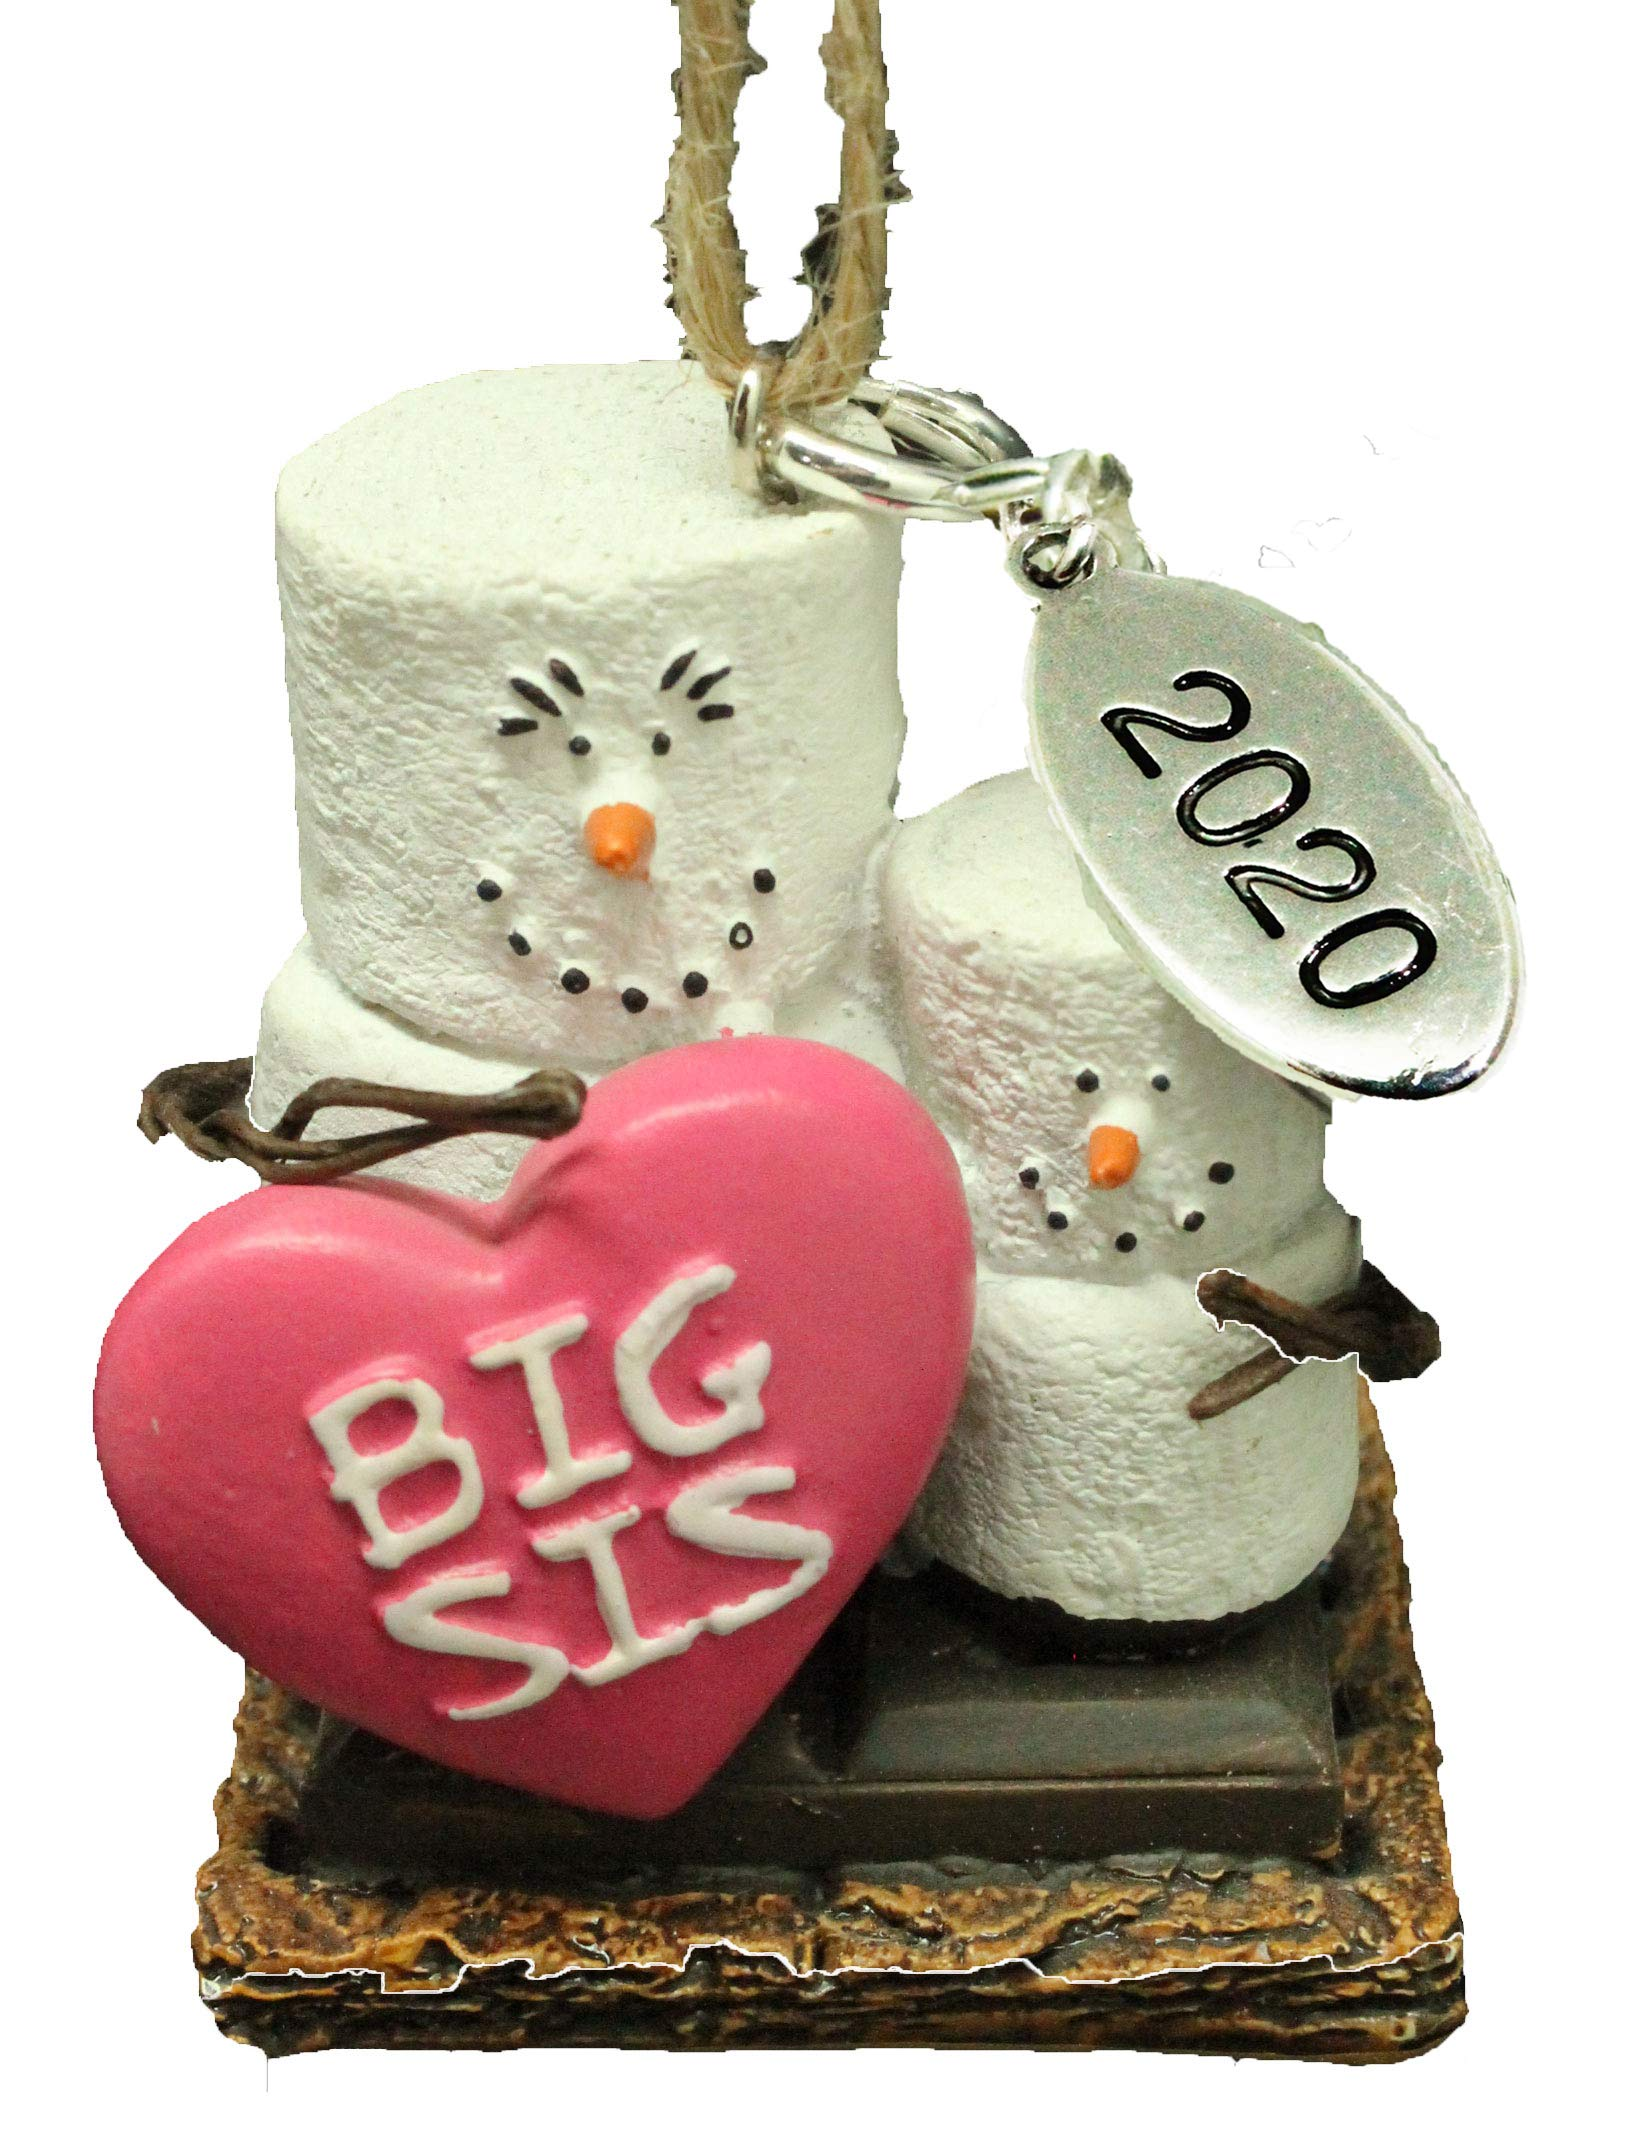 2020 Big Christmas Box Gifts Amazon.com: Twisted Anchor Trading Co Smores Ornament   Big Sister